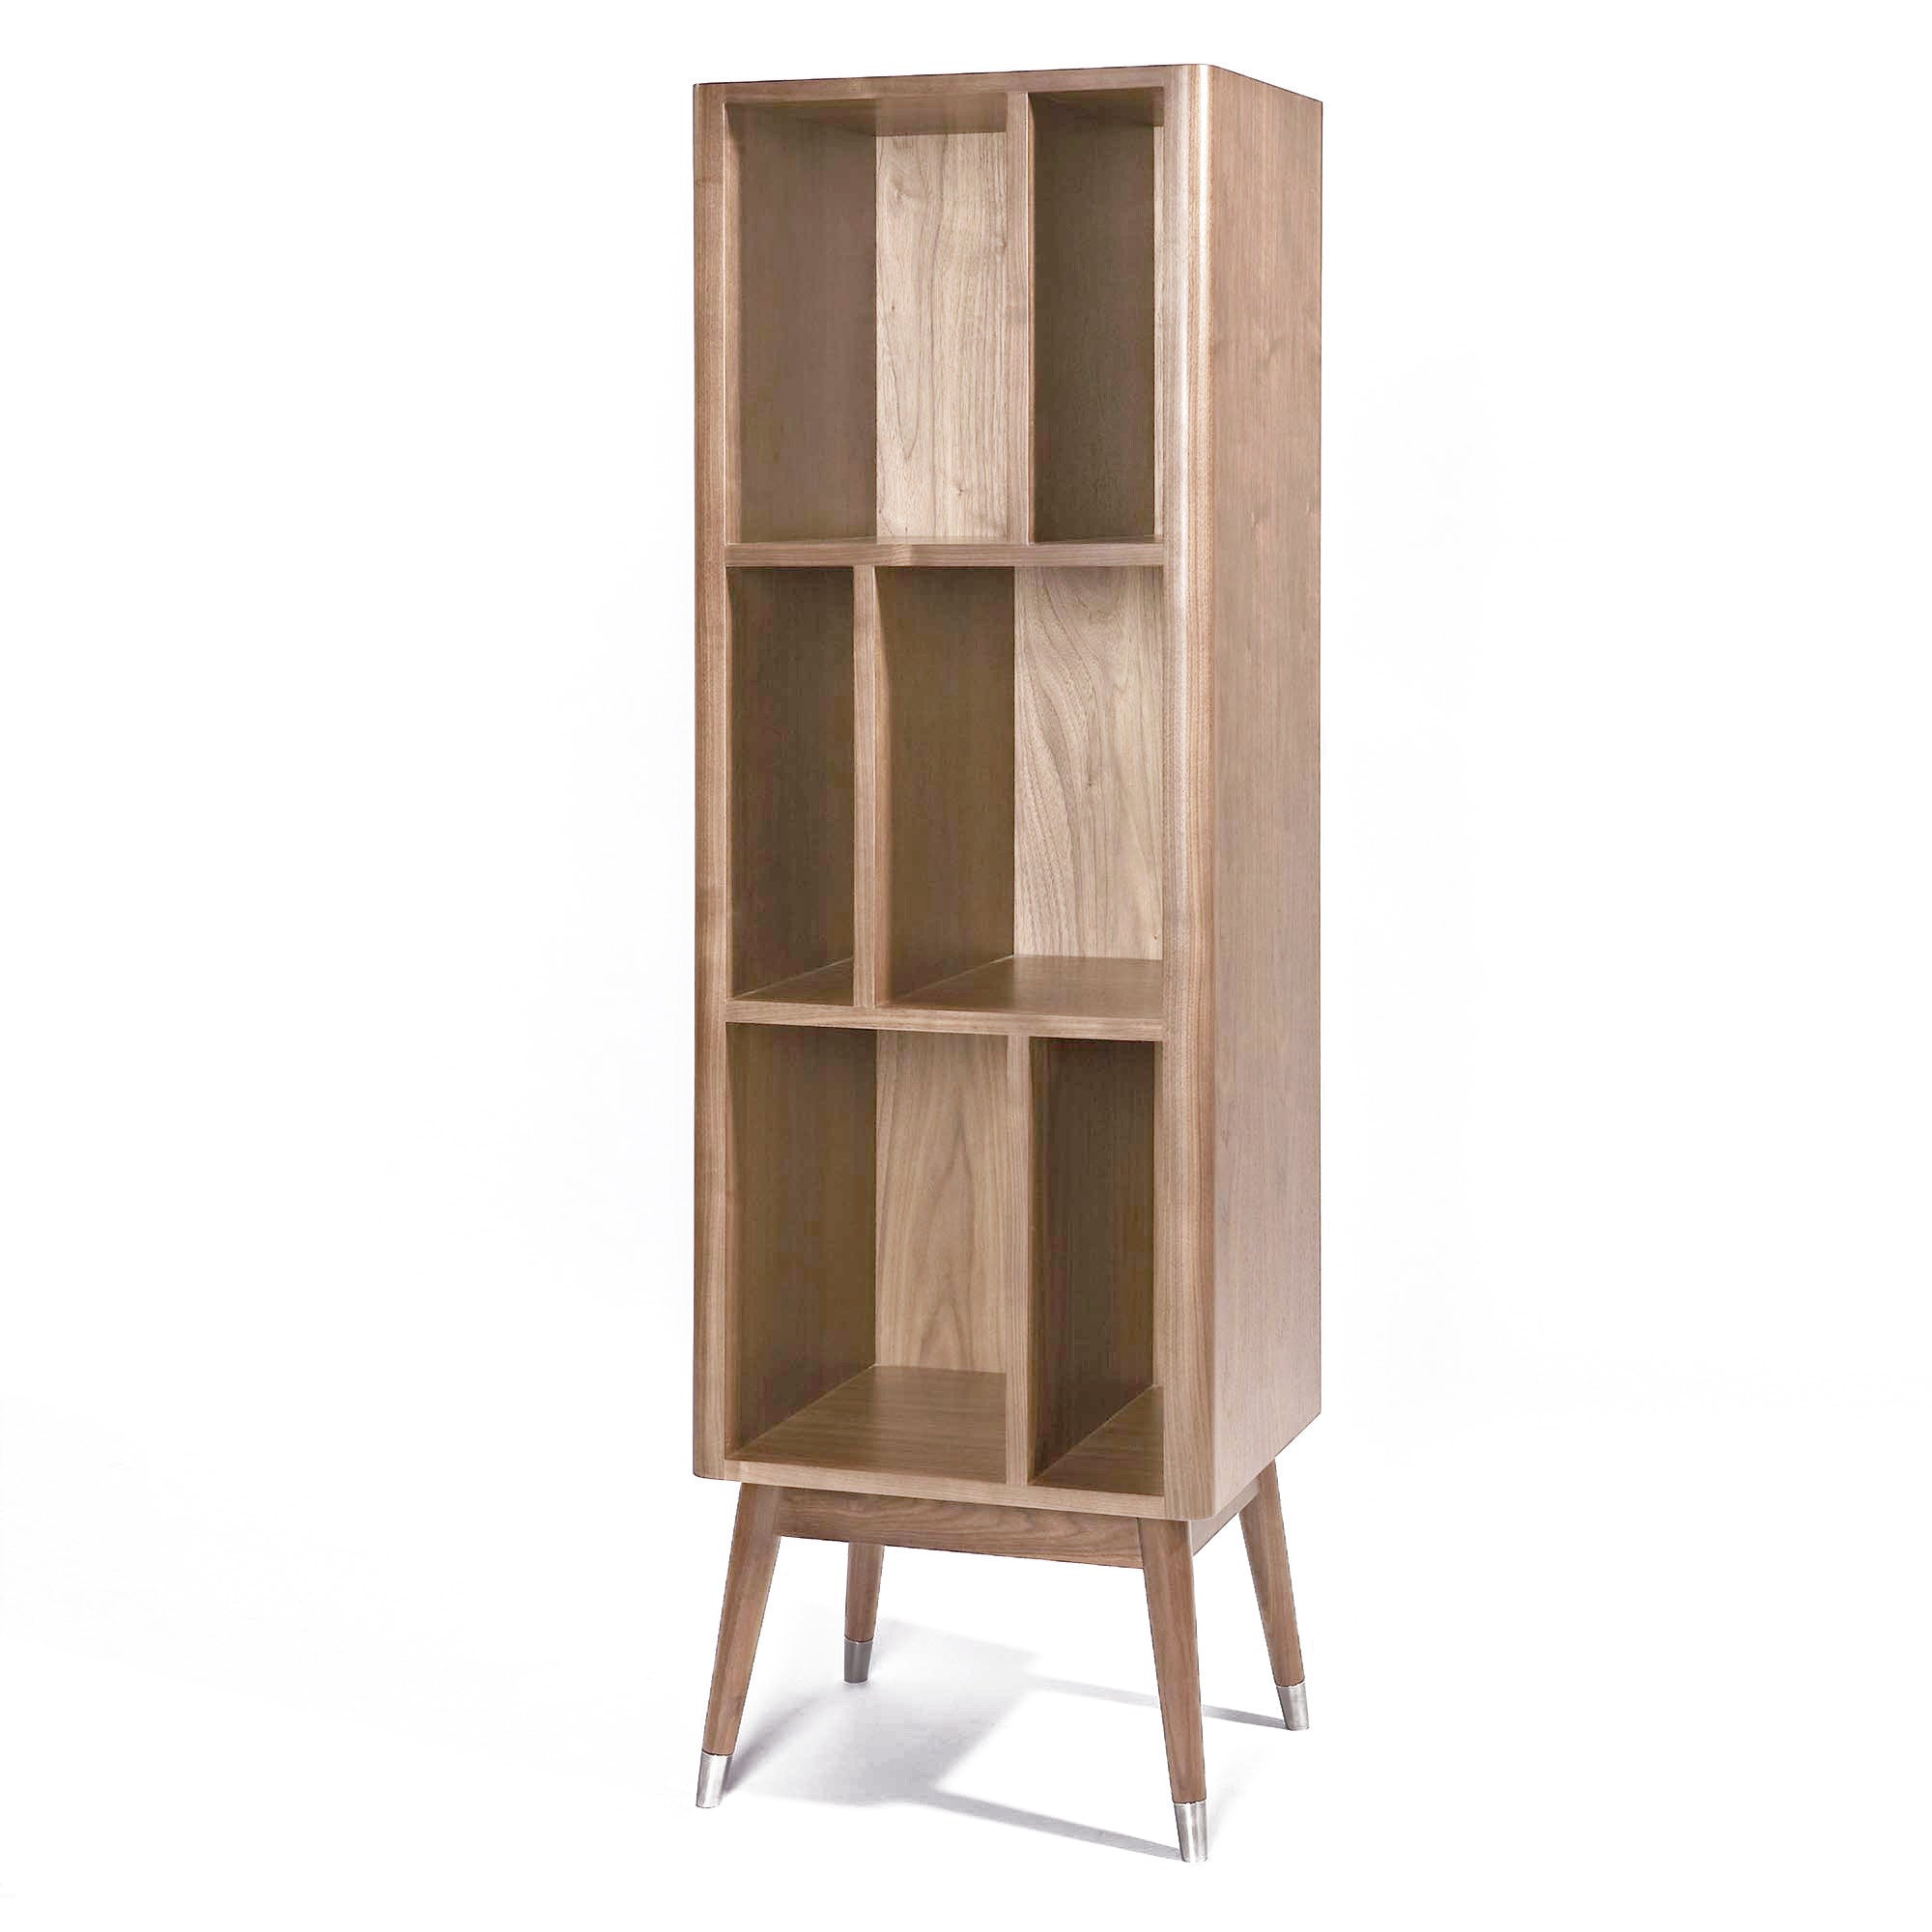 Uster Long cabinet  BSG16231-N -  خزانة أوستر لونج - Shop Online Furniture and Home Decor Store in Dubai, UAE at ebarza